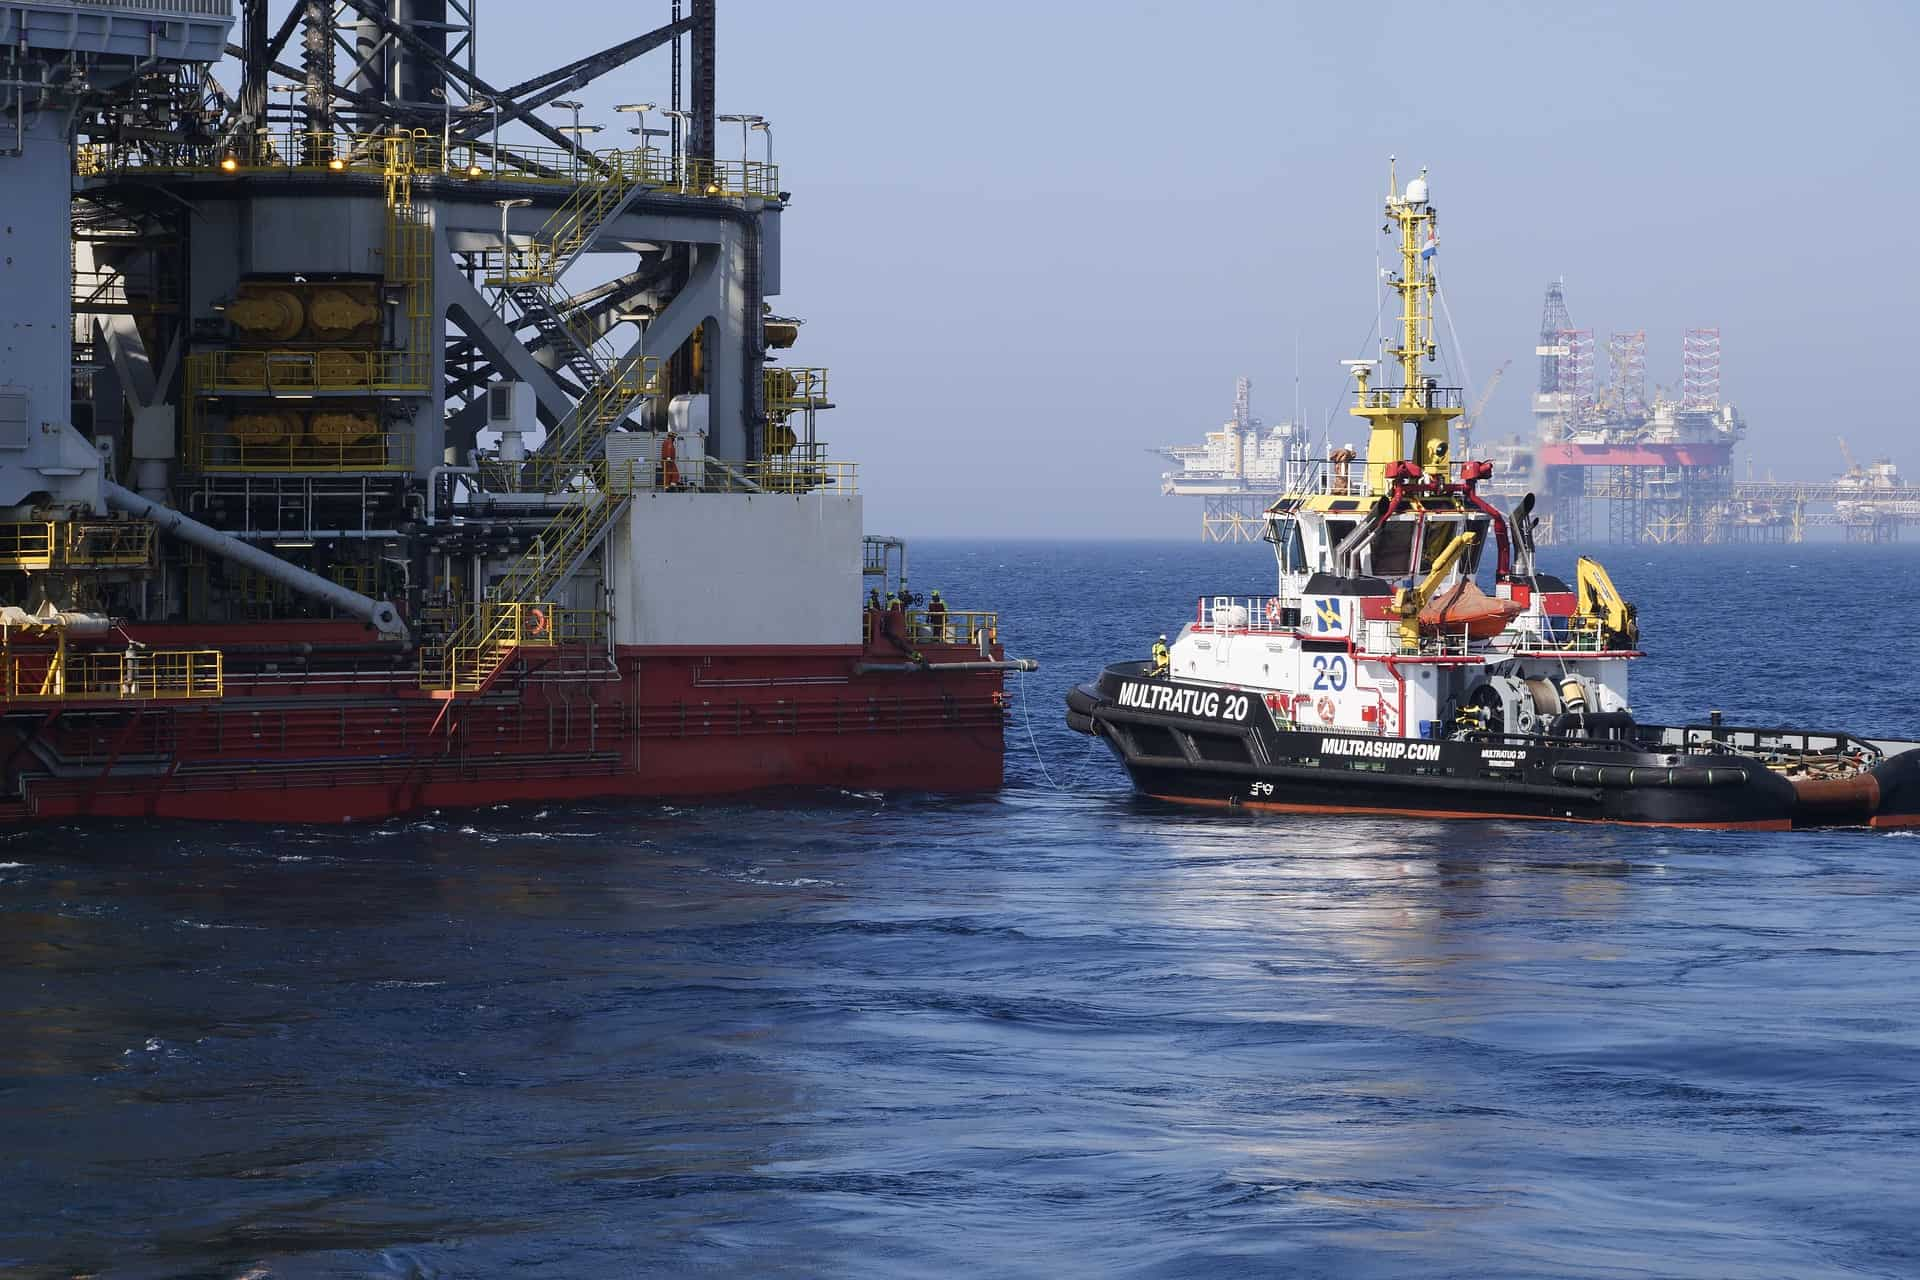 Transportation boat arriving at offshore oil and gas rig